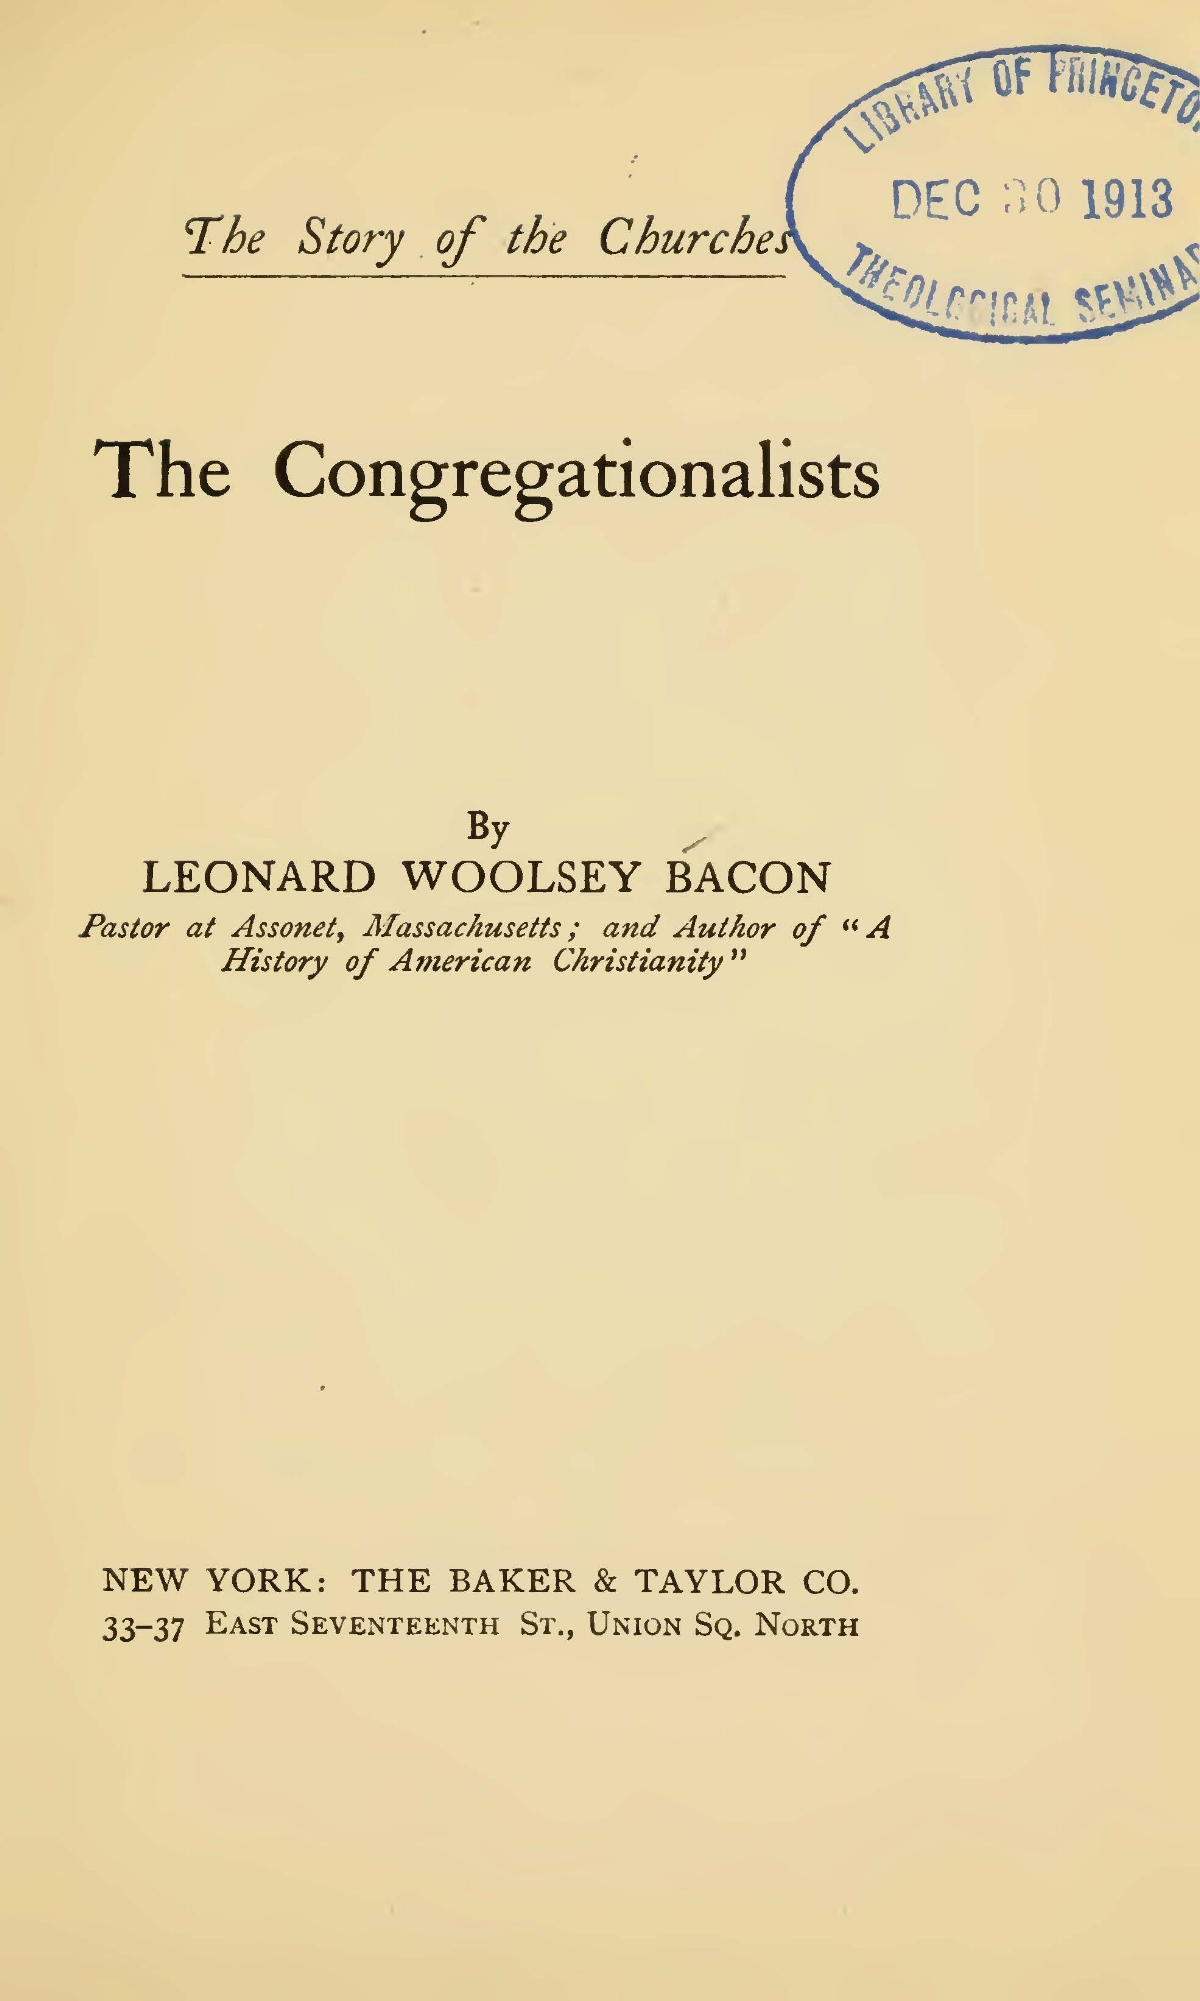 Bacon, Leonard Woolsey, The Congregationalists Title Page.jpg